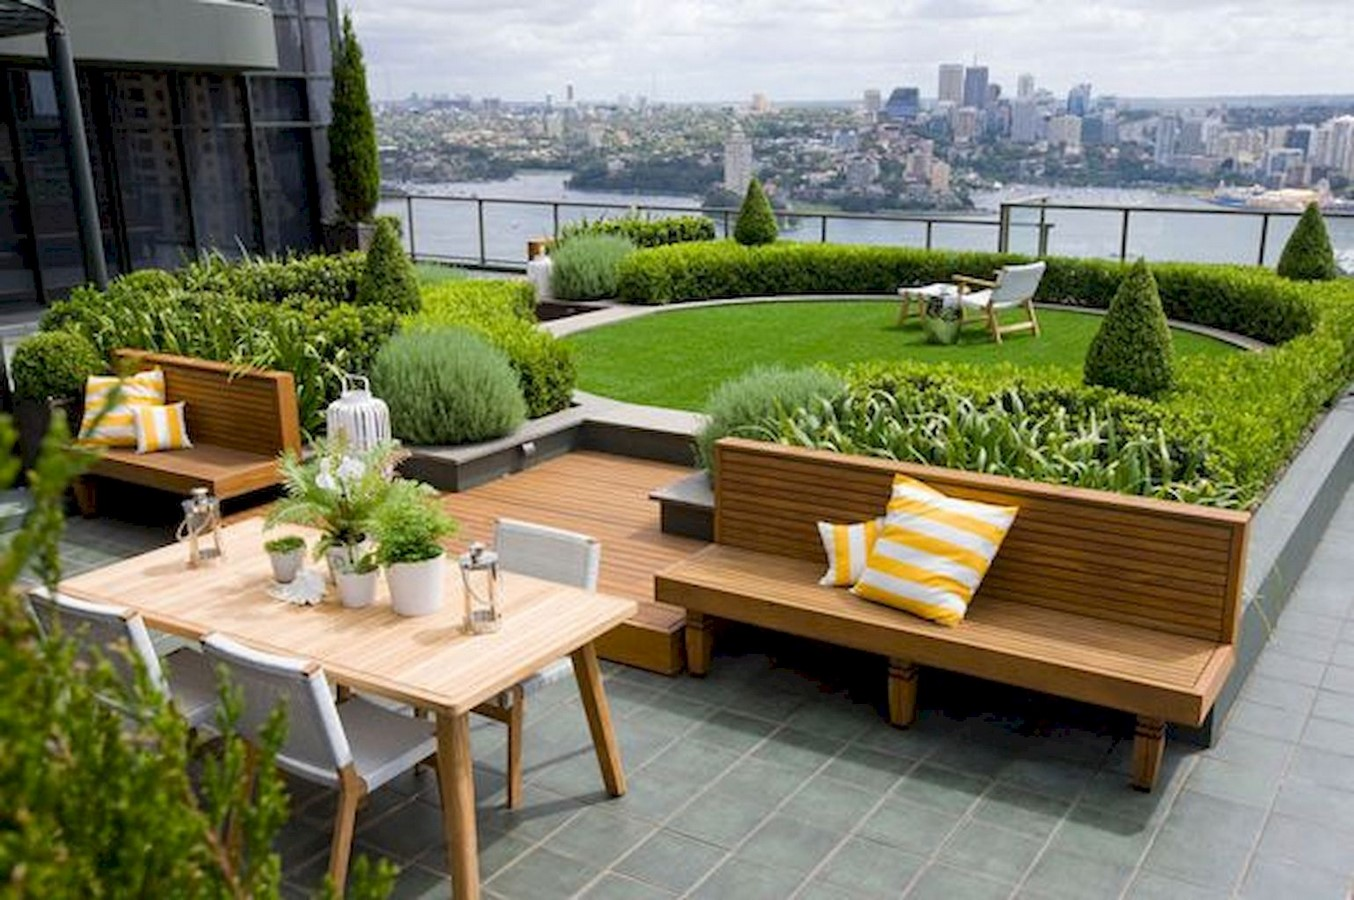 10 things to remember when designing rooftop gardens - Sheet7